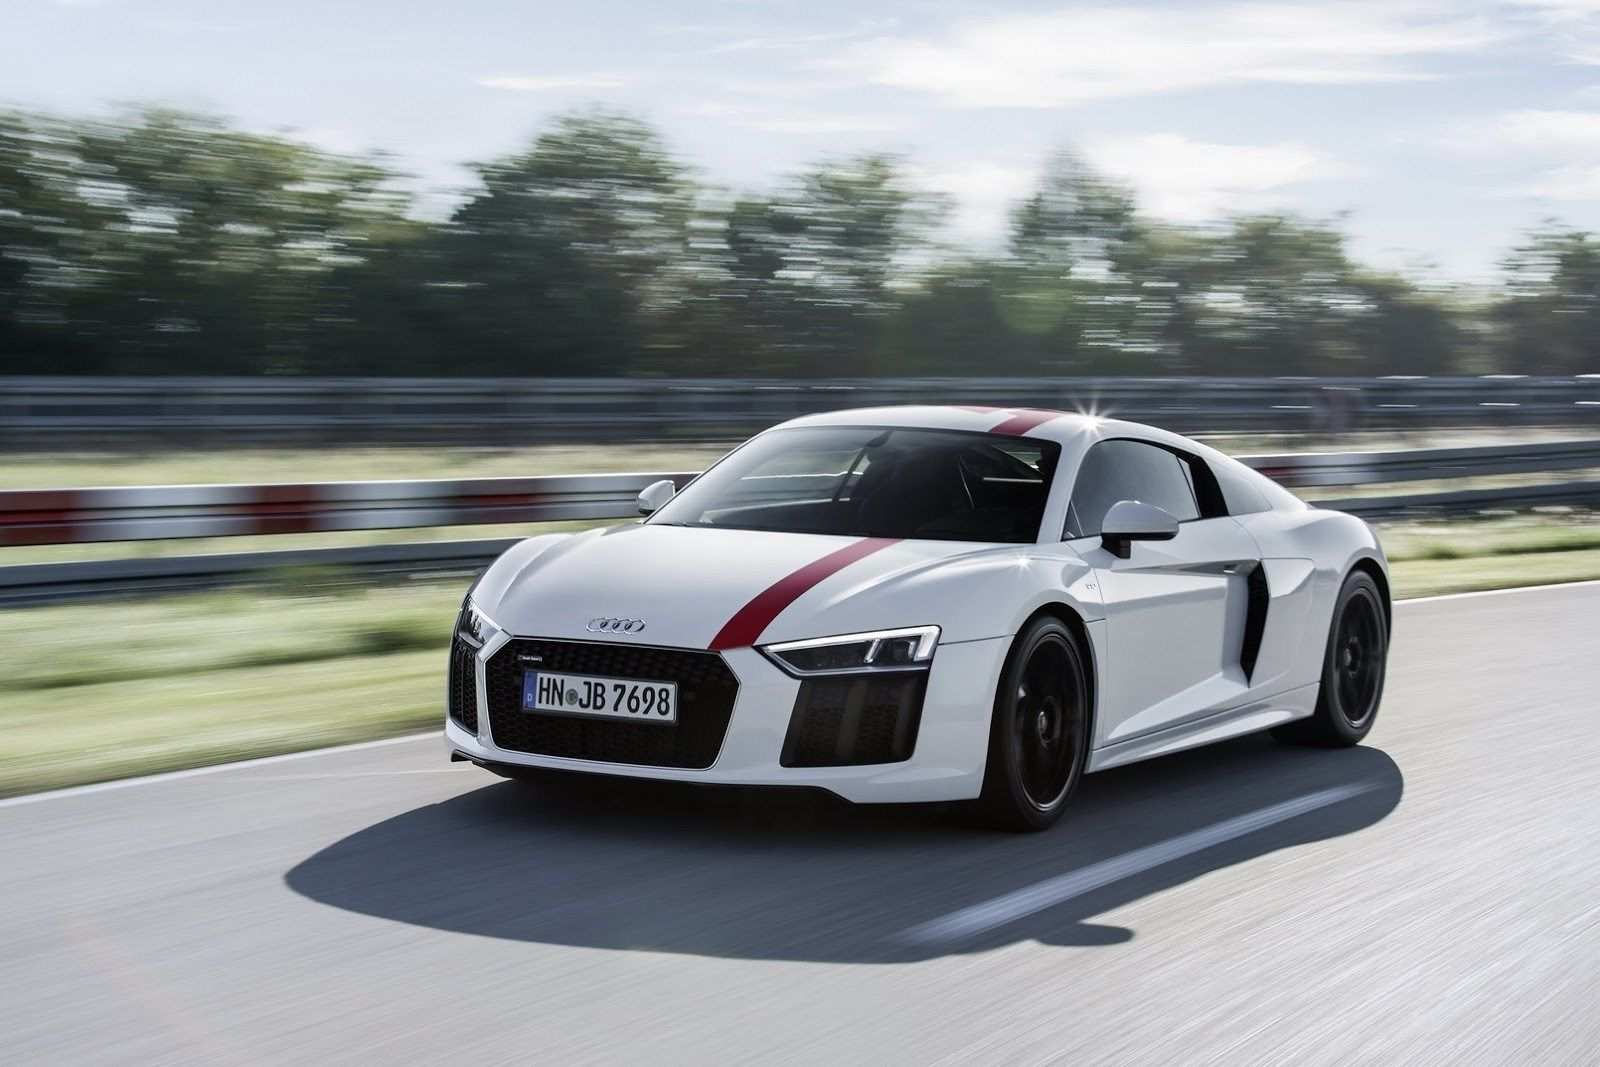 24 New 2020 Audi R8 LMXs Redesign